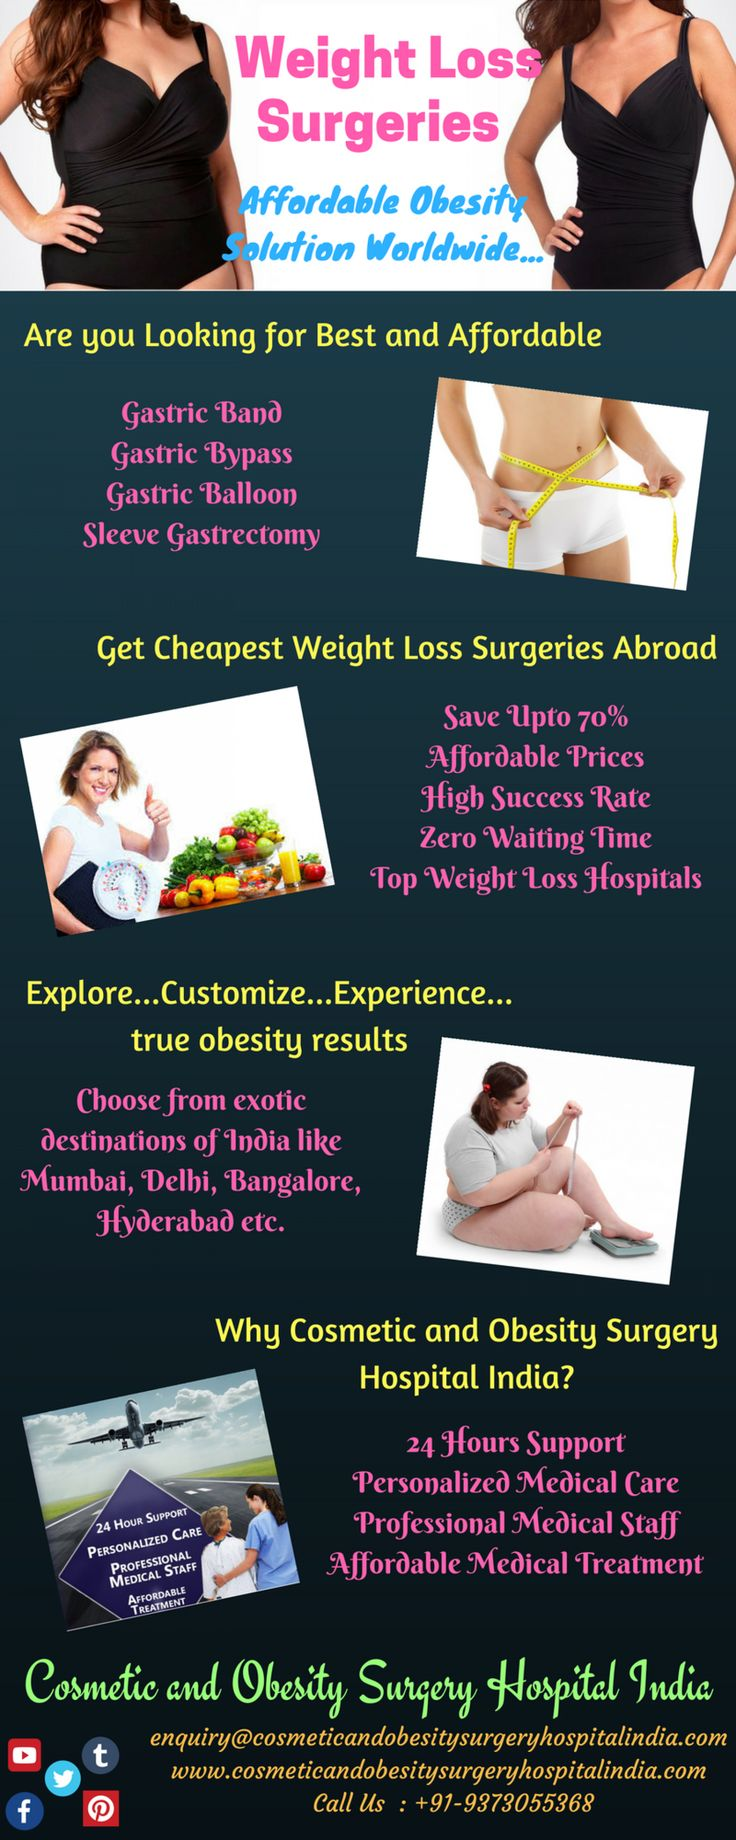 Weight loss blogs 100 pounds picture 3